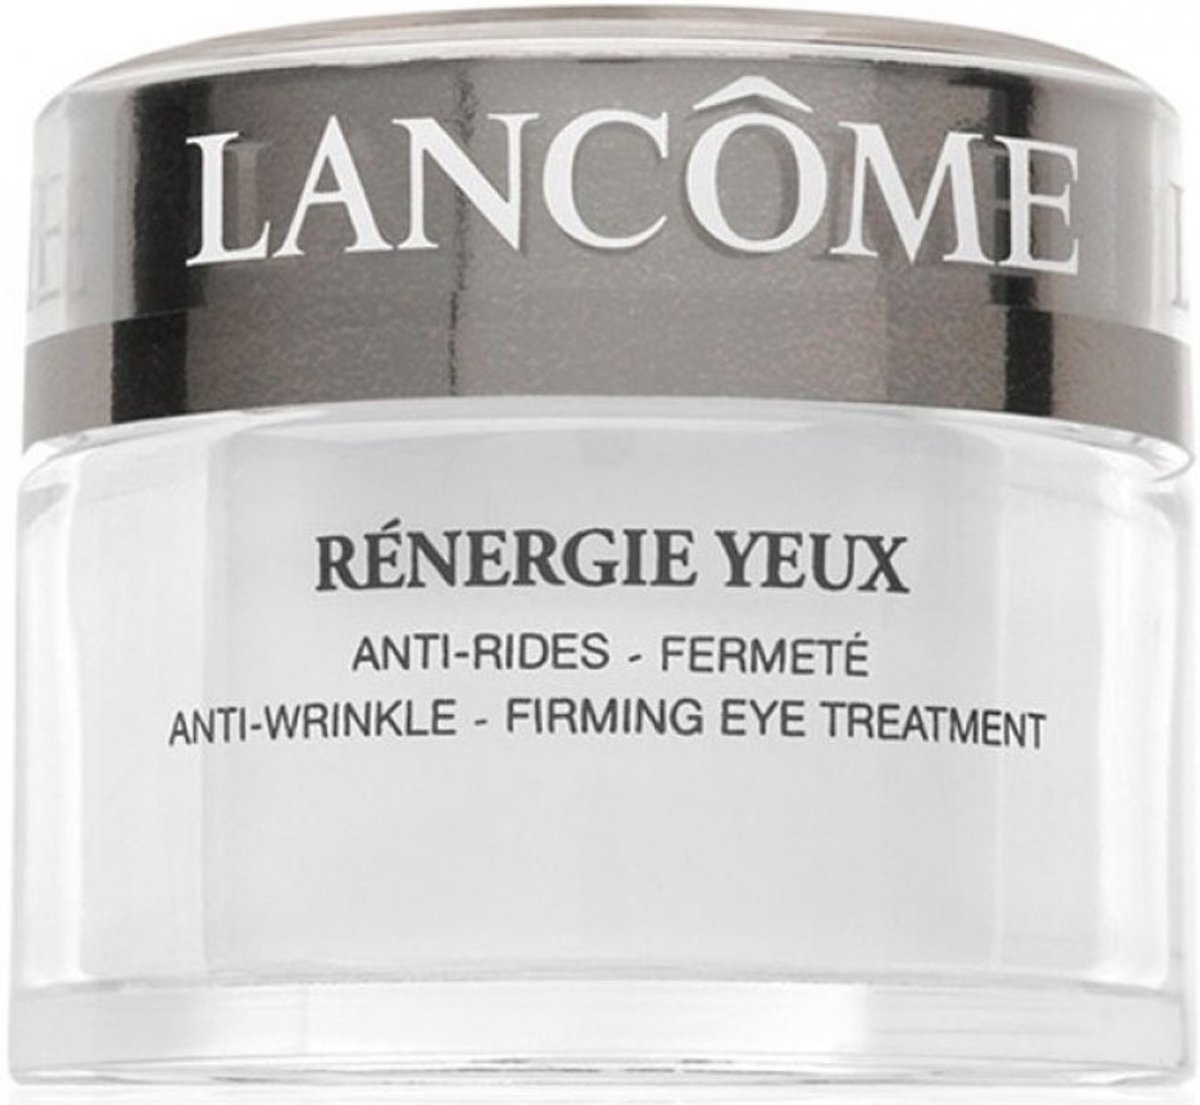 Lancome Renergie Yeux Eye Cream 15 ml